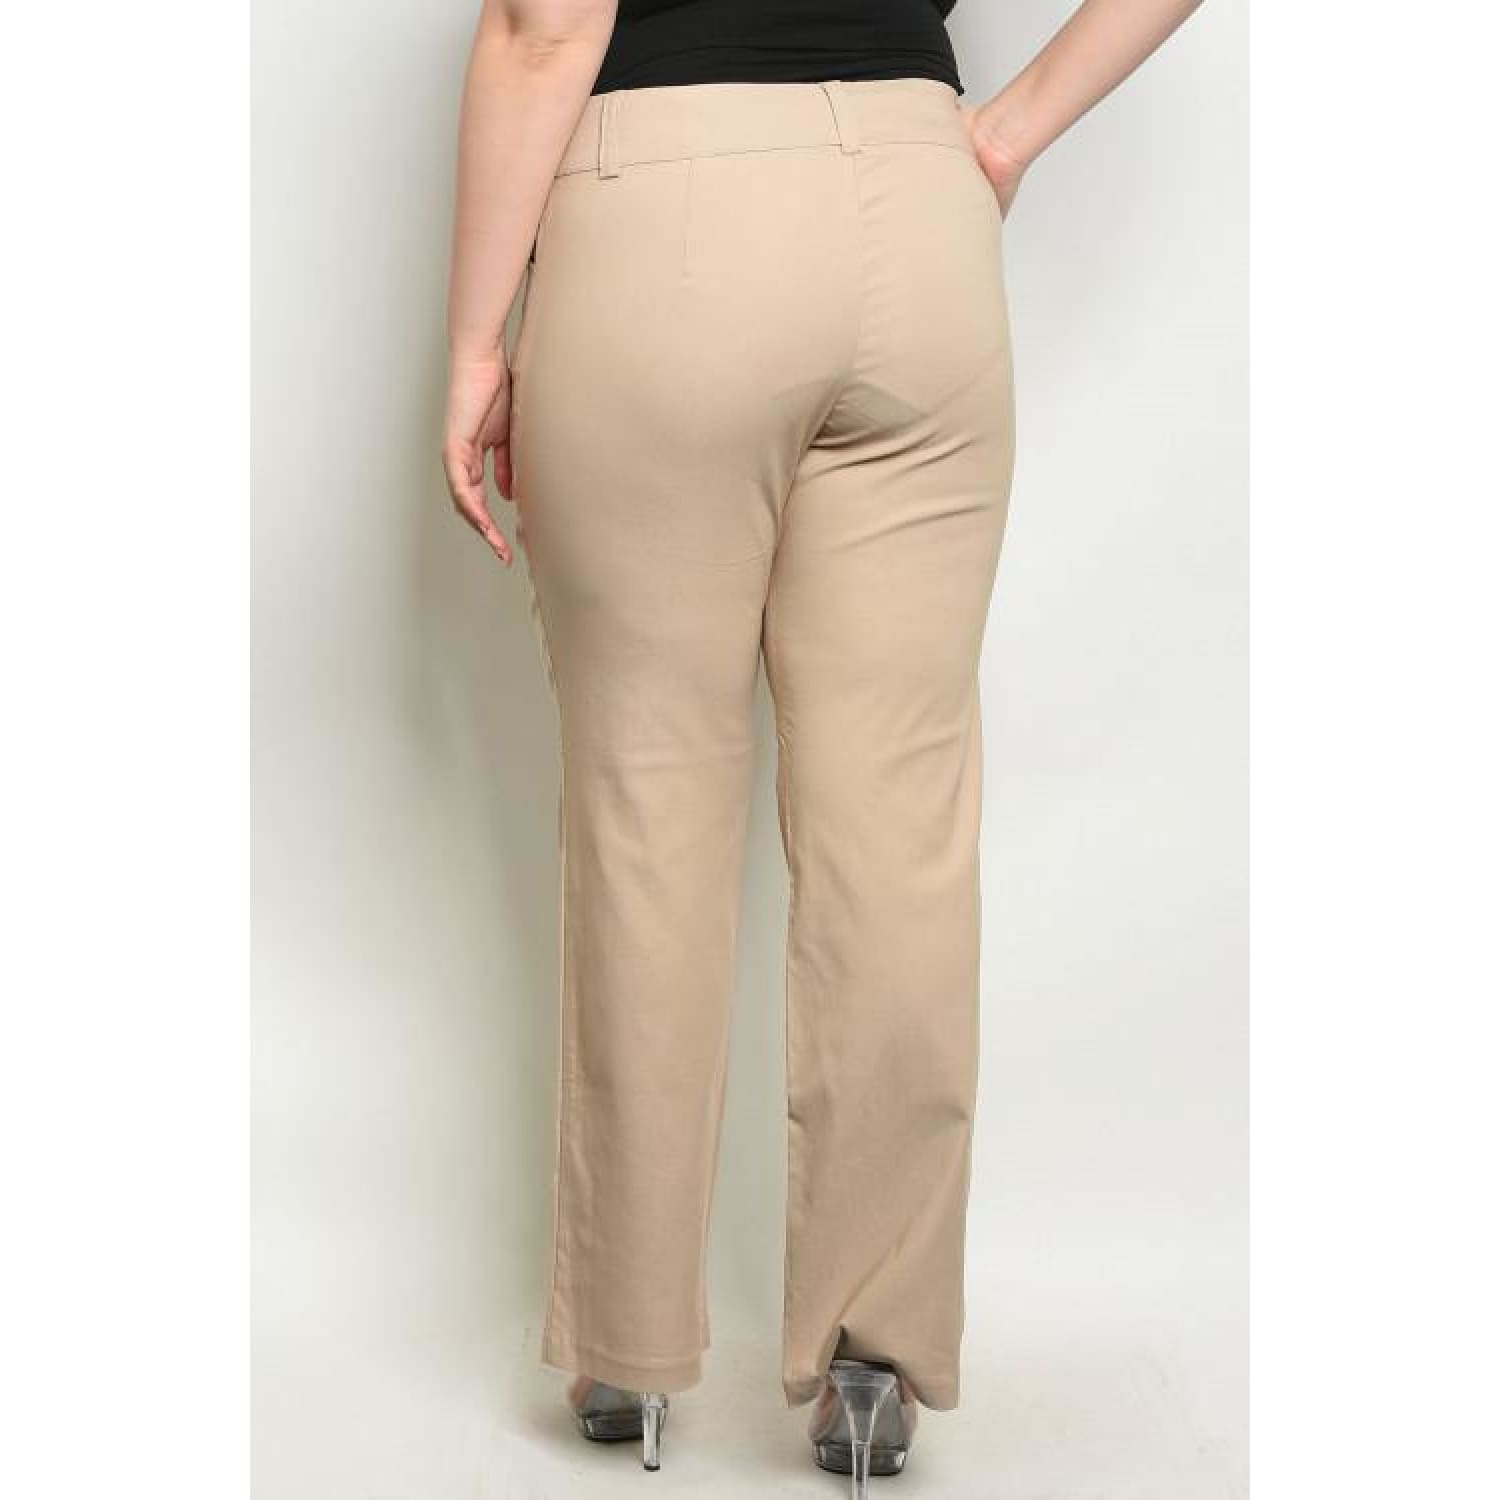 Tan Button Up Pants Plus - Best YOU by HTS